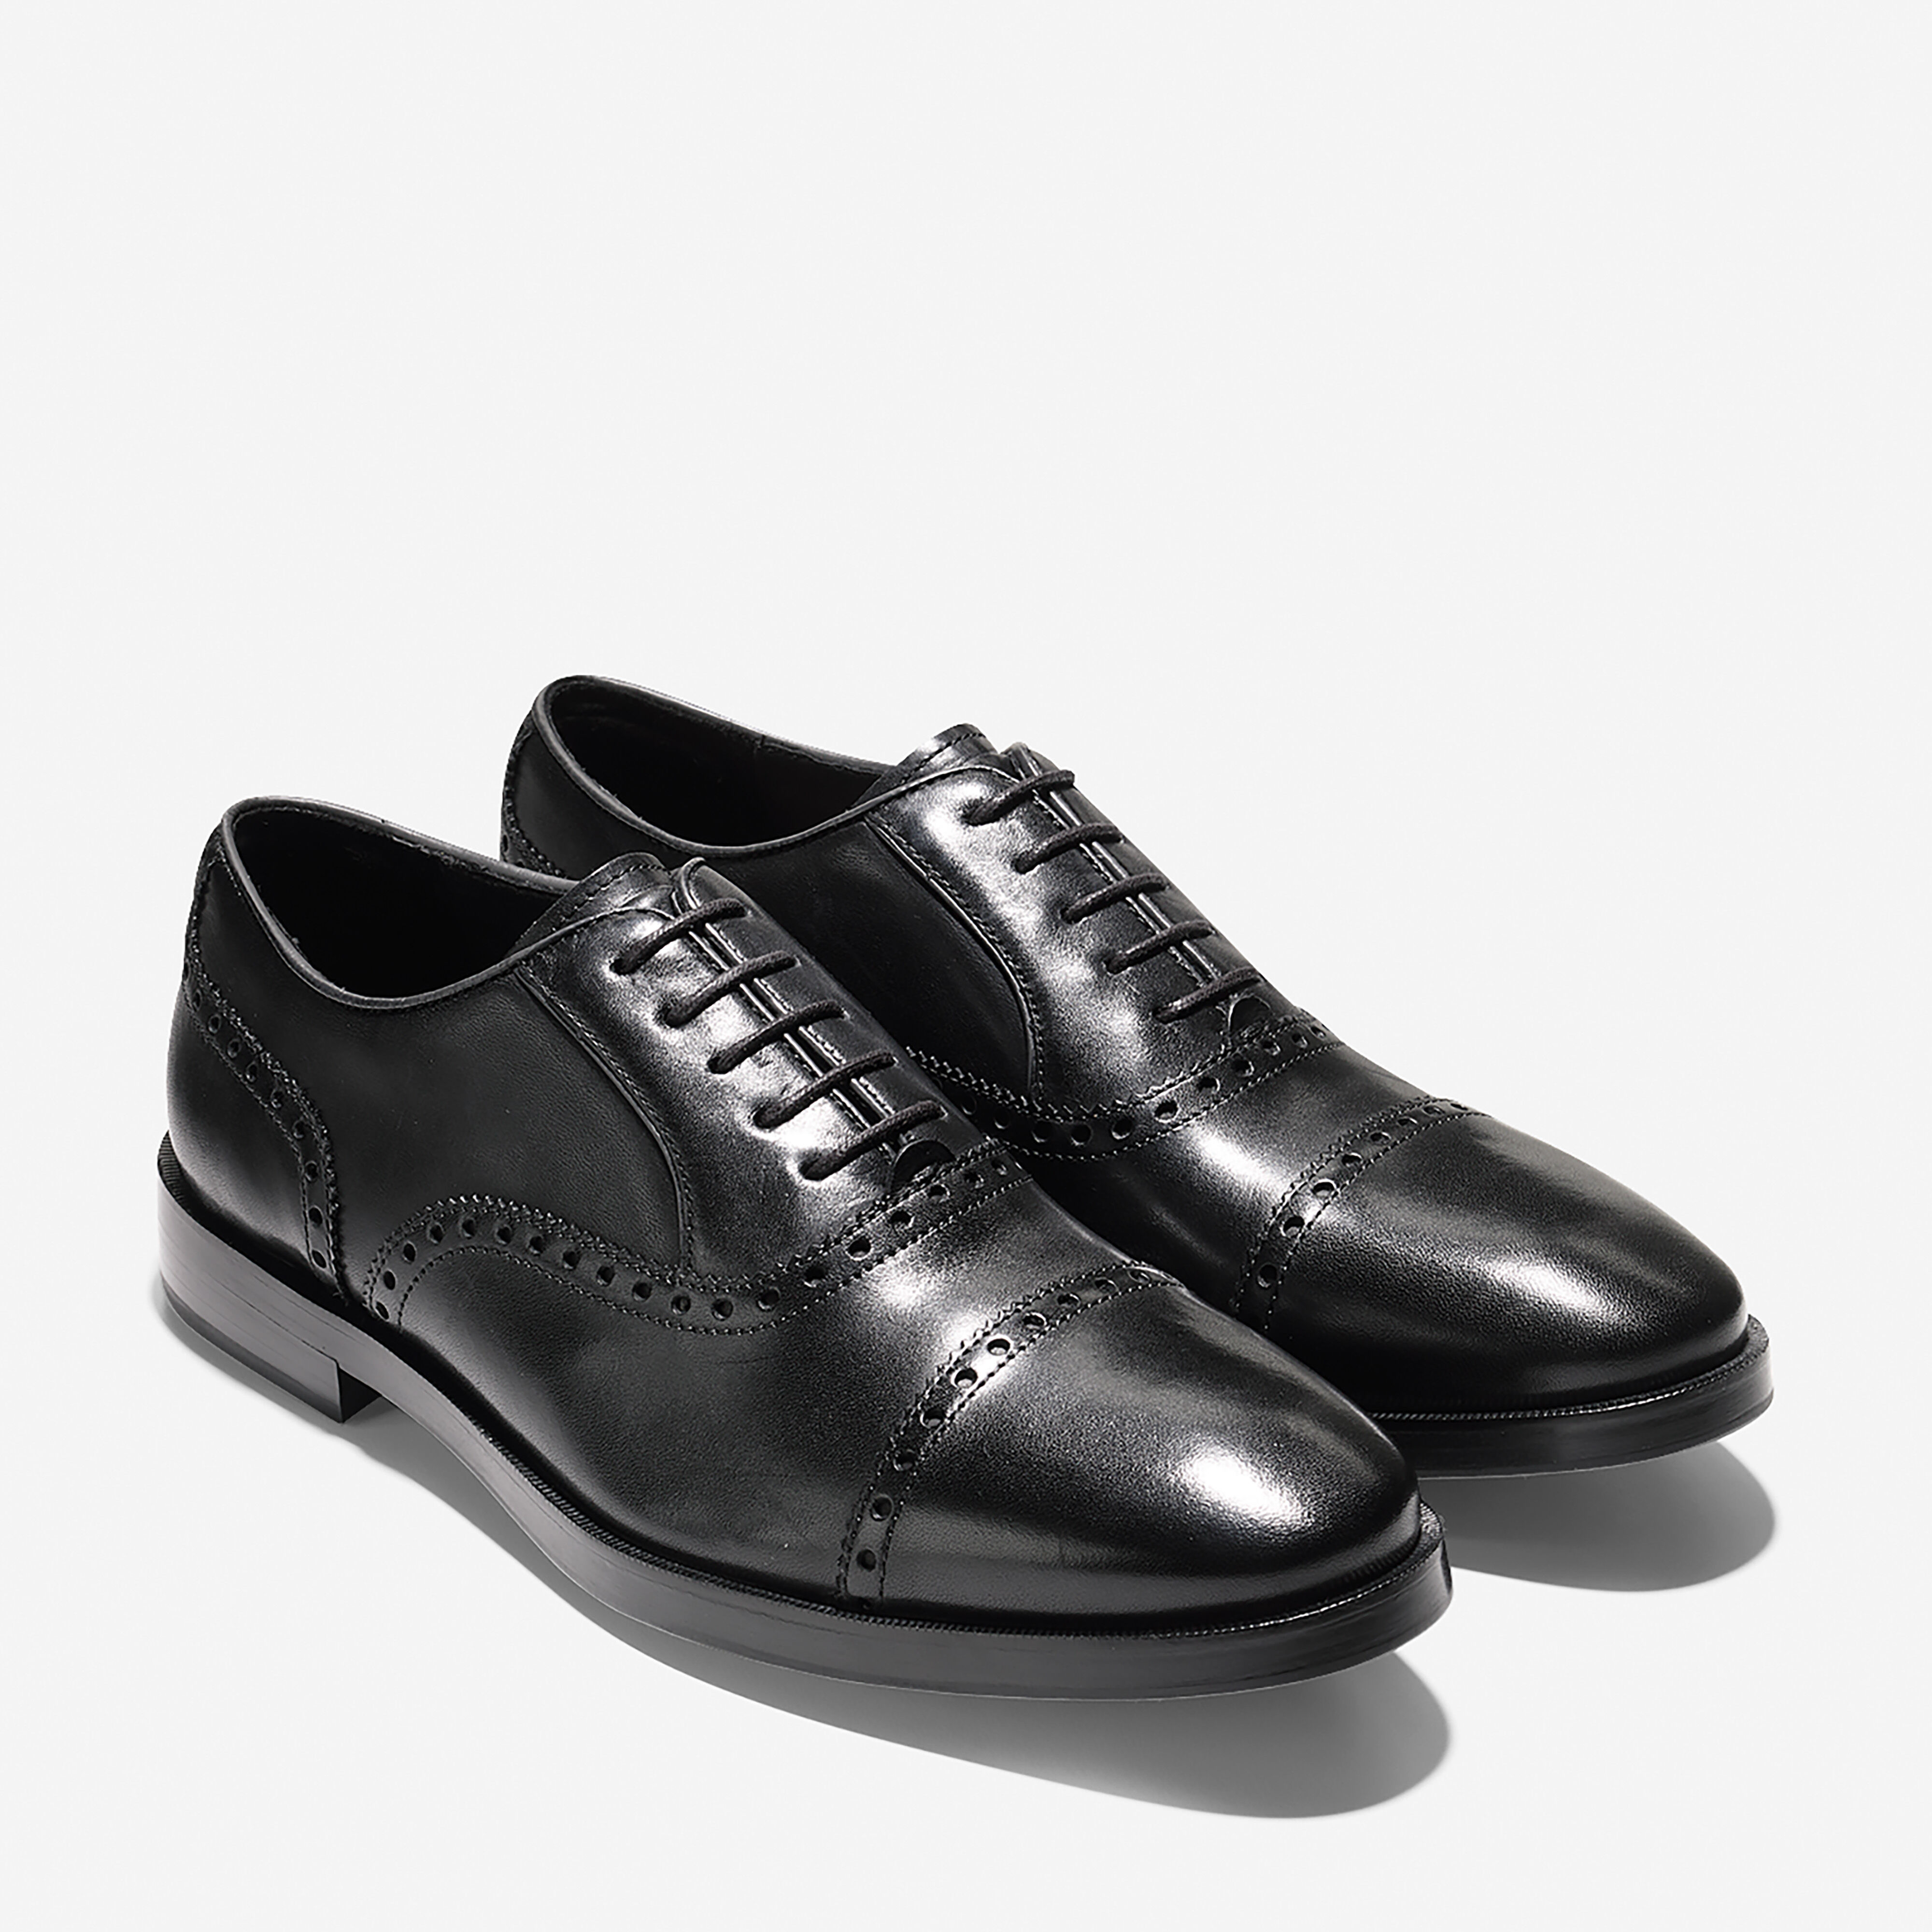 Cole Haan Mens Oxfords Shoes Leather Air Cap Toe Career Dress Casual 11 Black